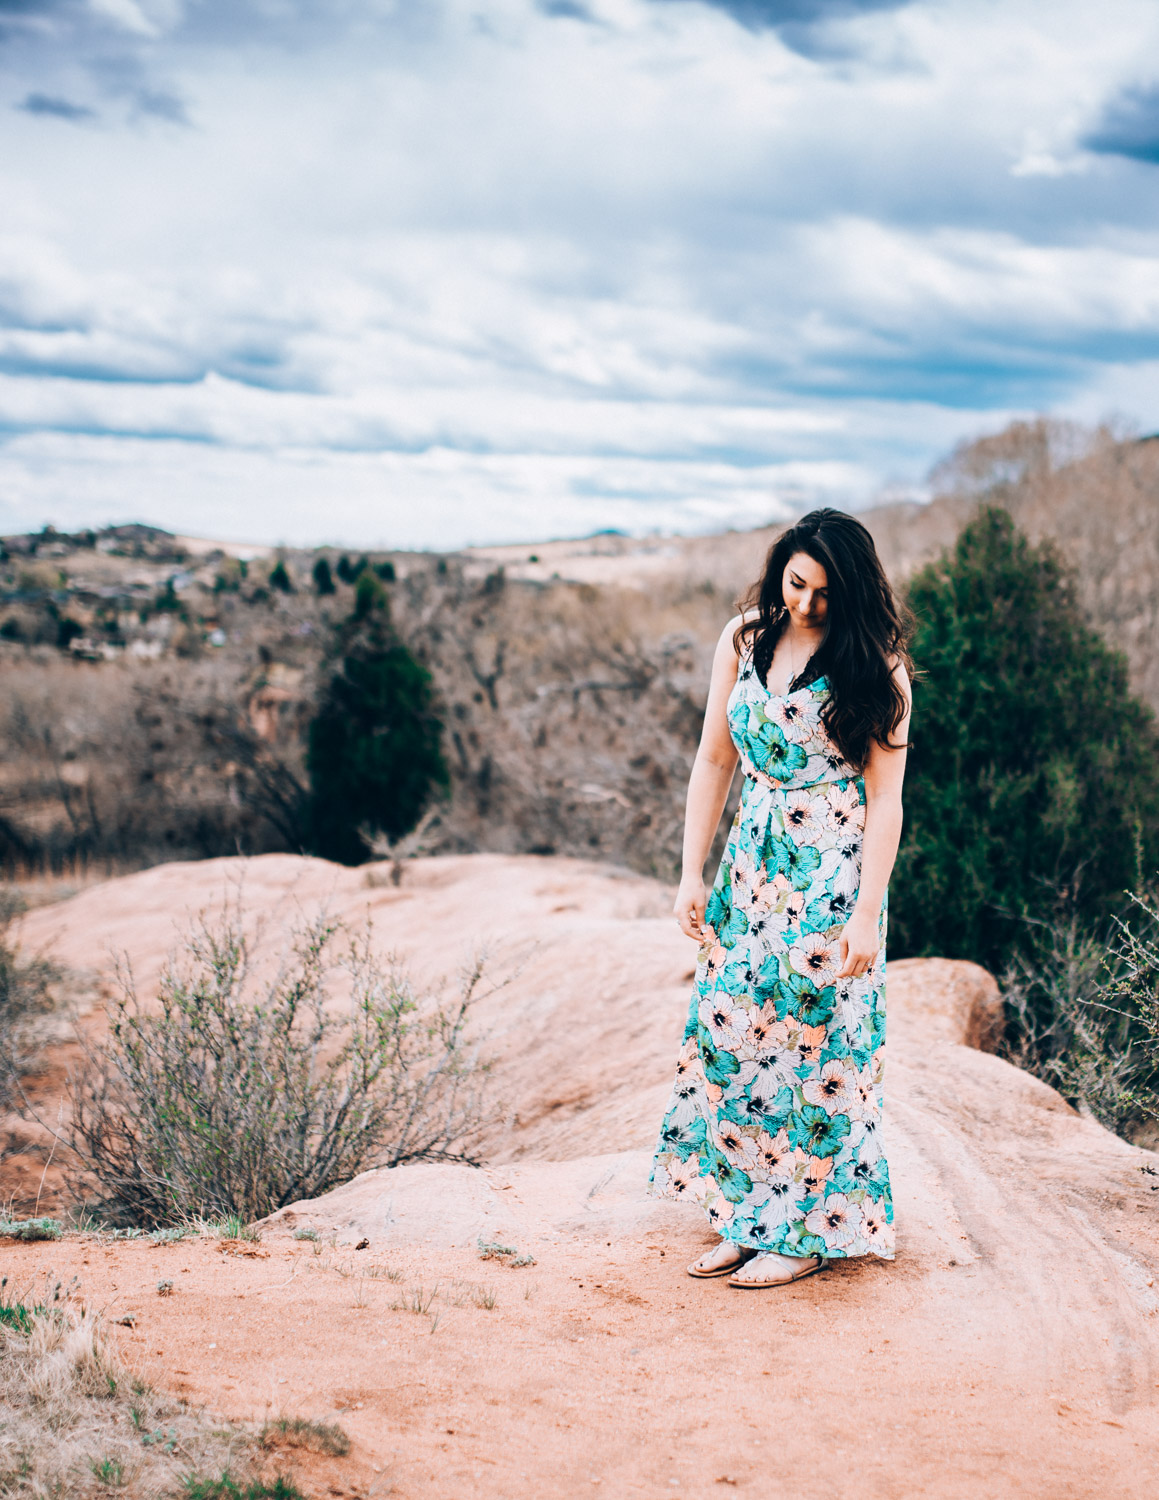 Red Rocks High School Senior Photos - Denver Colorado (7 of 24).jpg